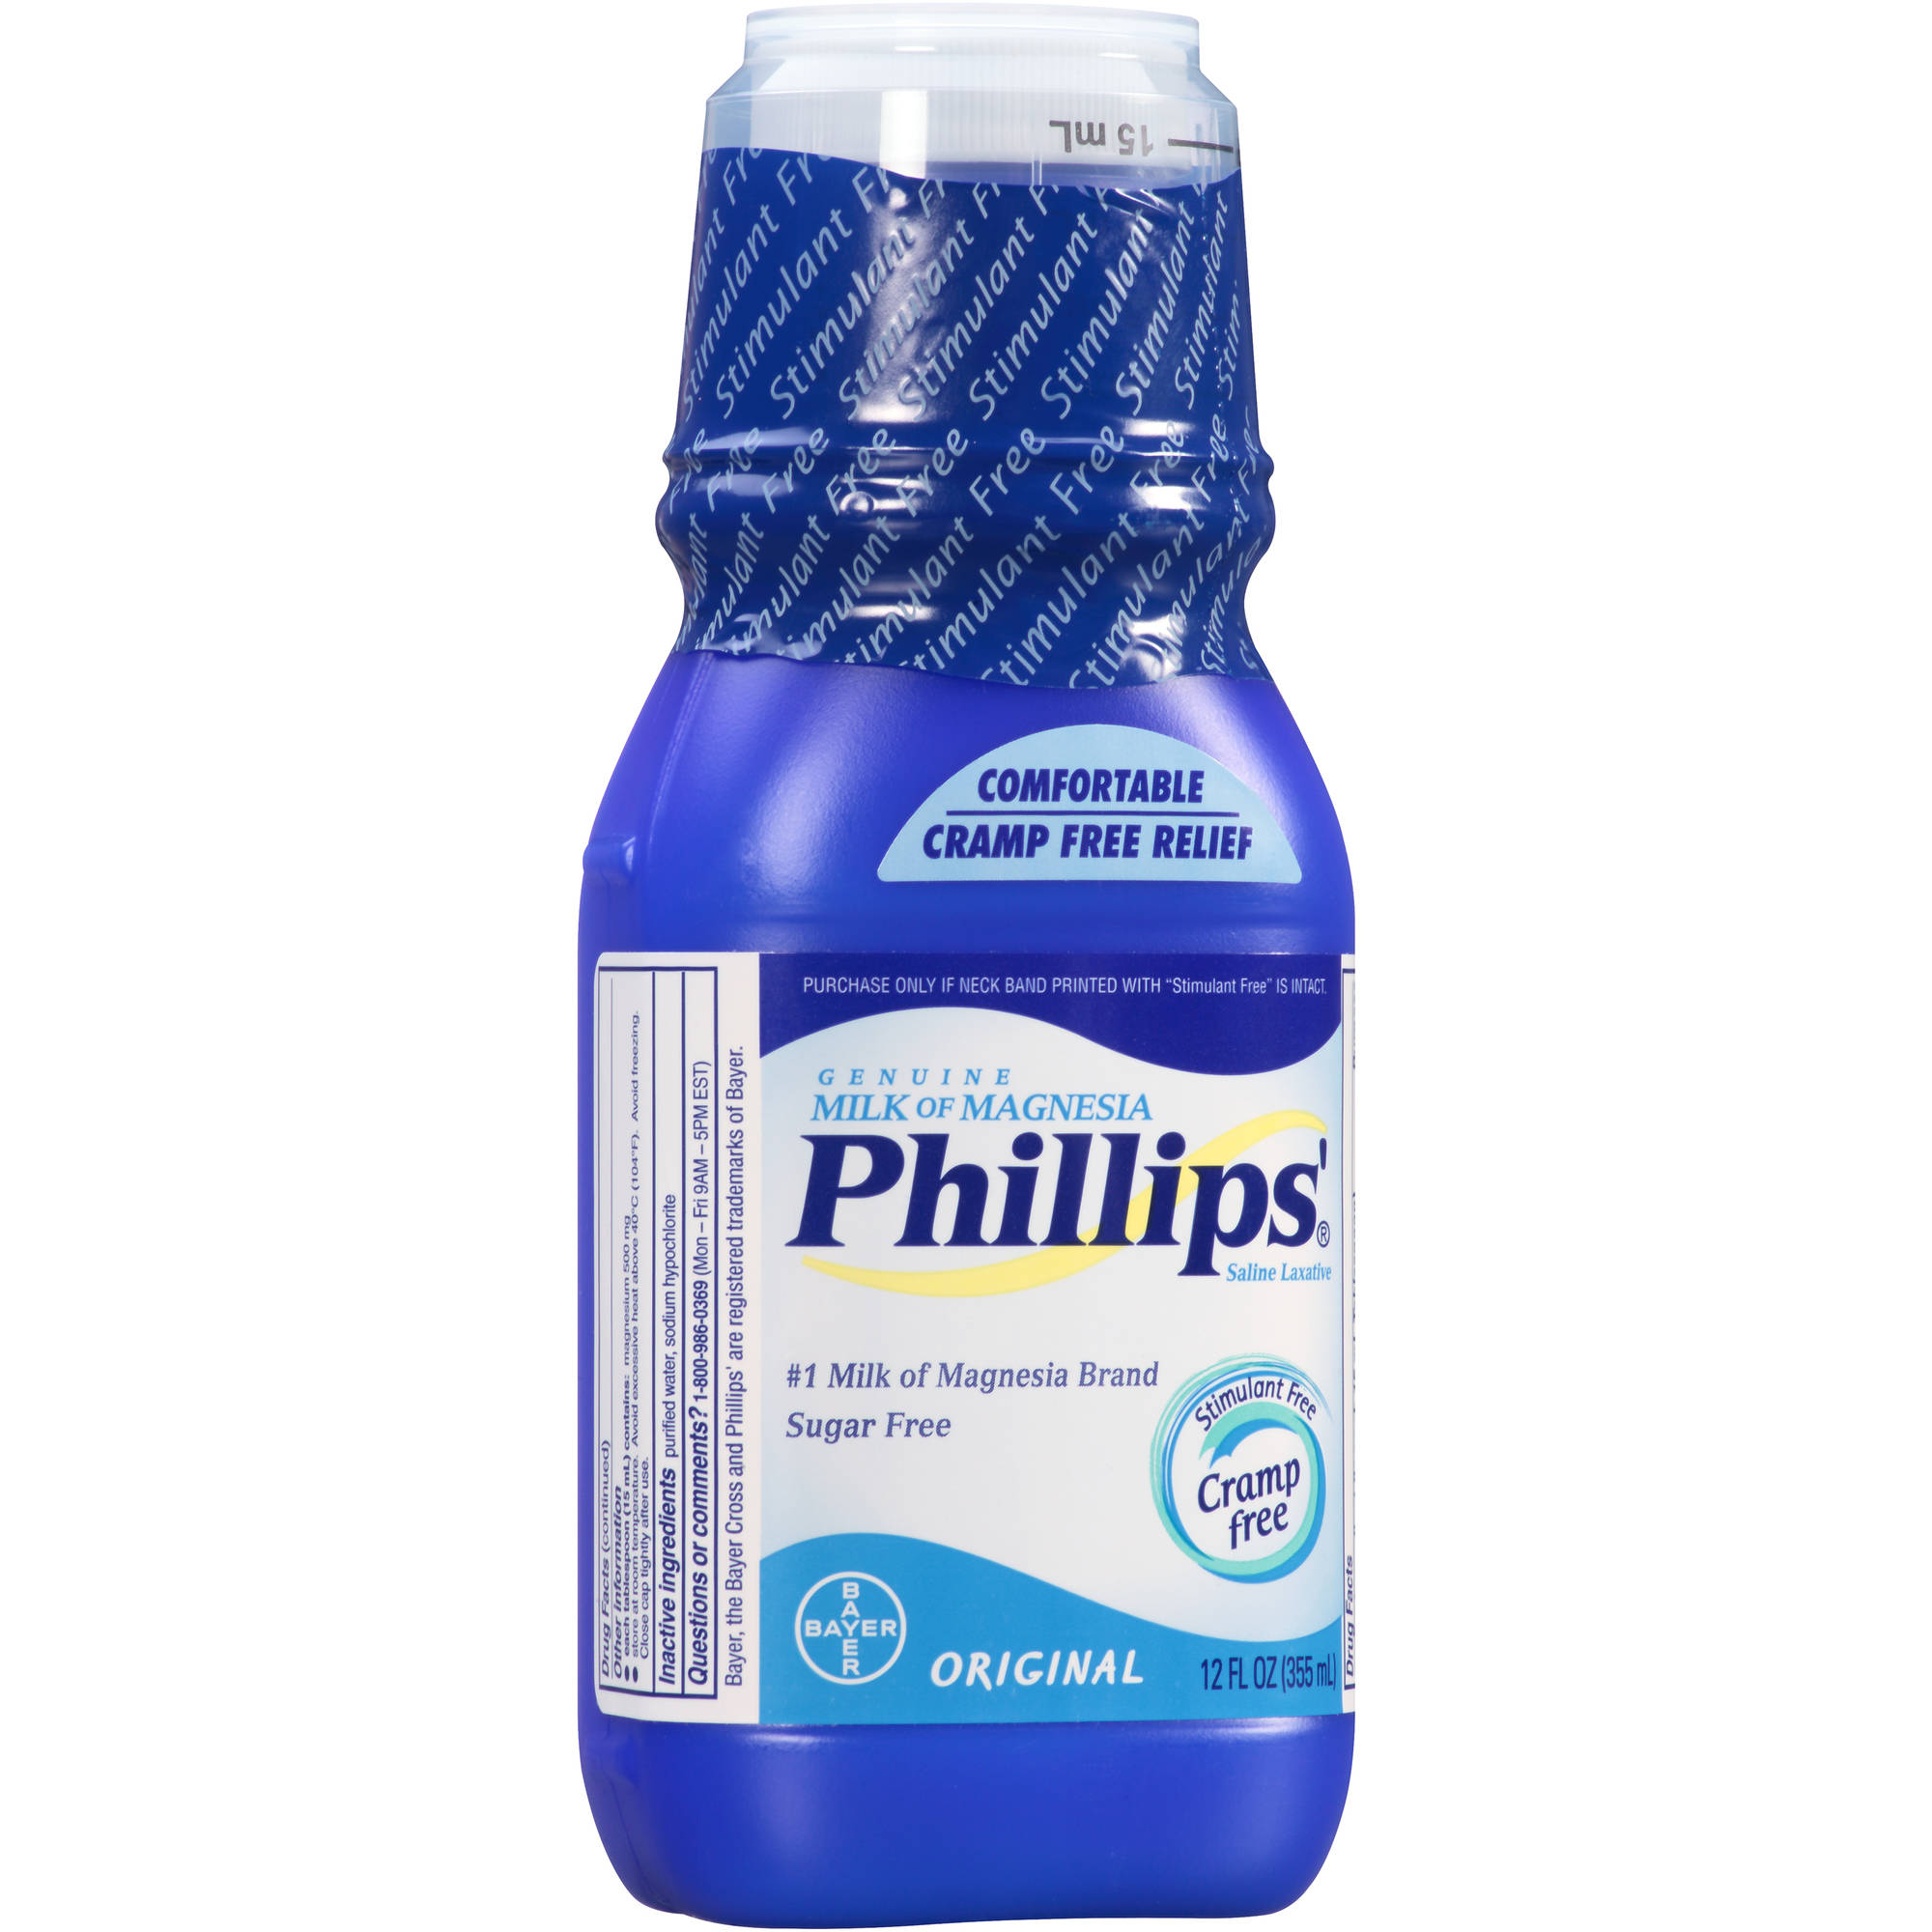 Phillips' Genuine Milk of Magnesia Original Saline Laxative Liquid, 12 fl oz